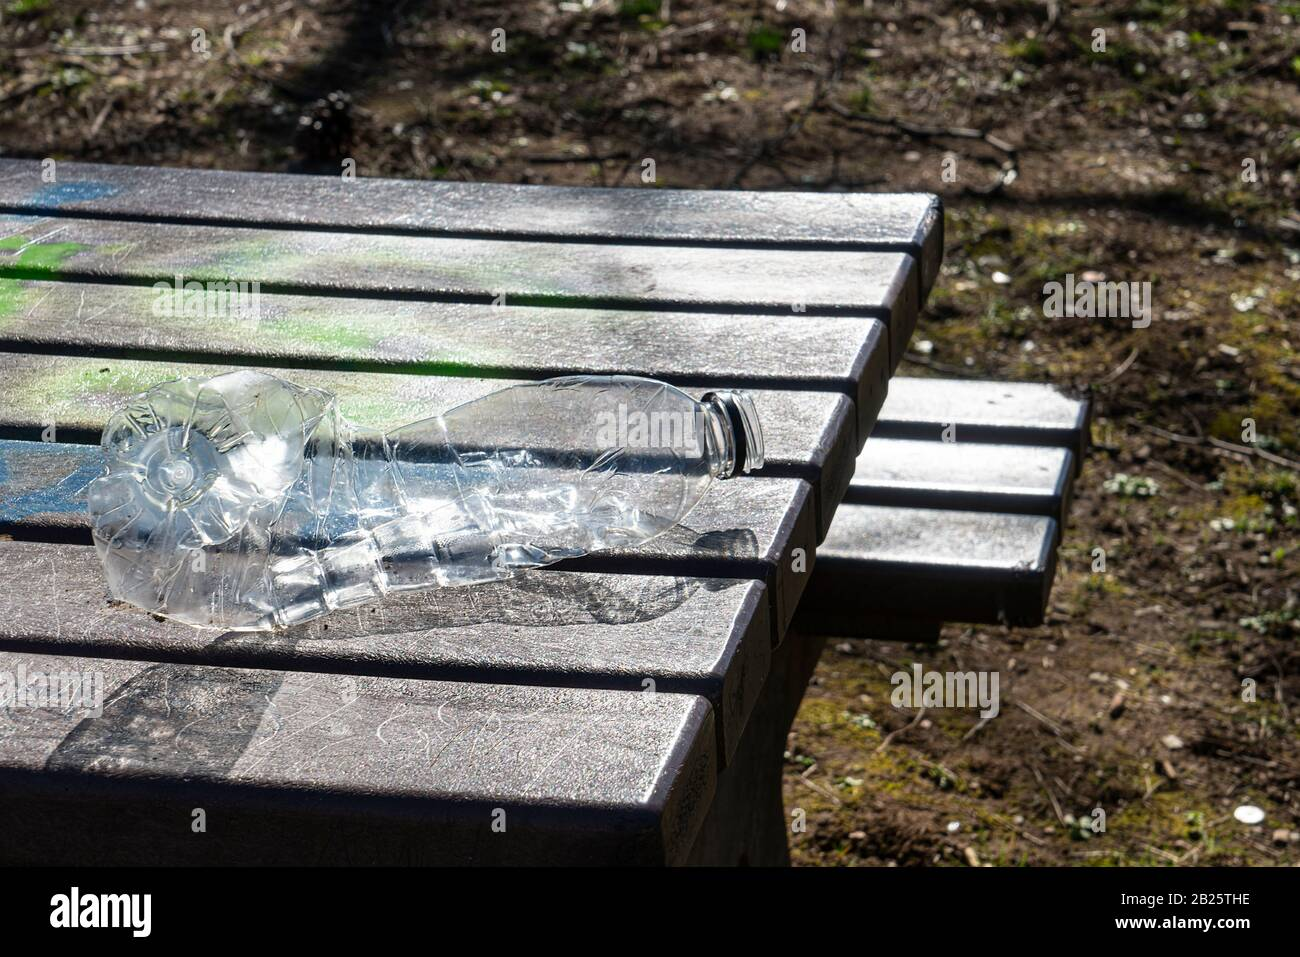 A plastic bottle blown by the wind falls on the grass in the park Stock Photo